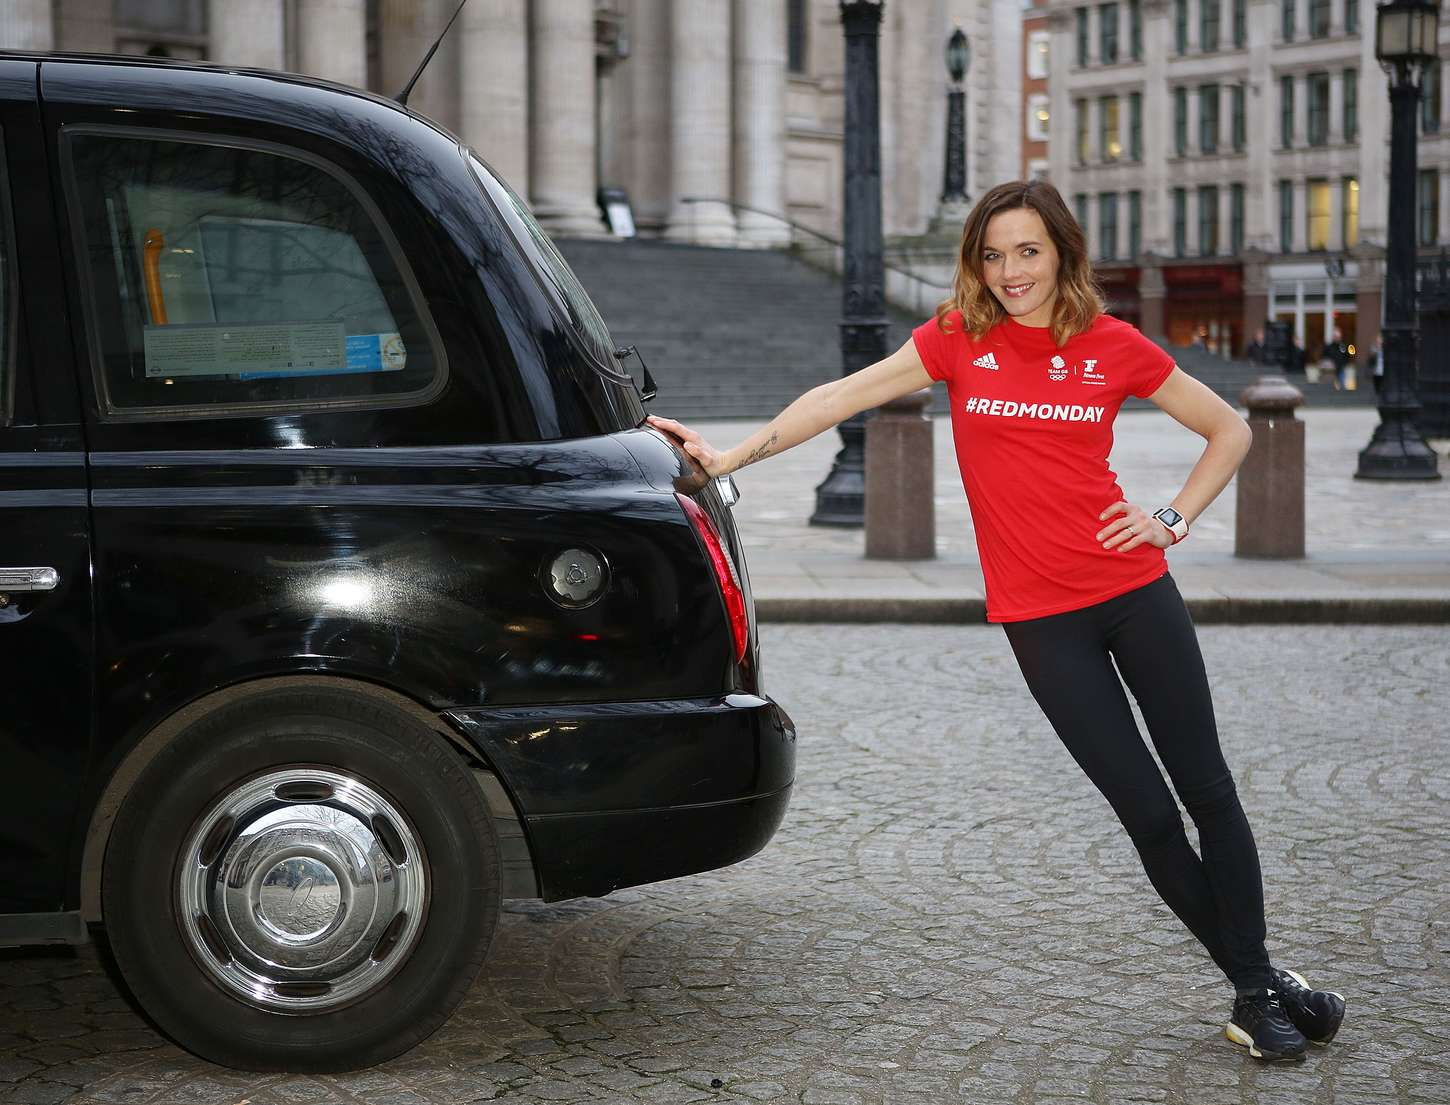 Victoria Pendleton Fitness First Red Monday Promo in London